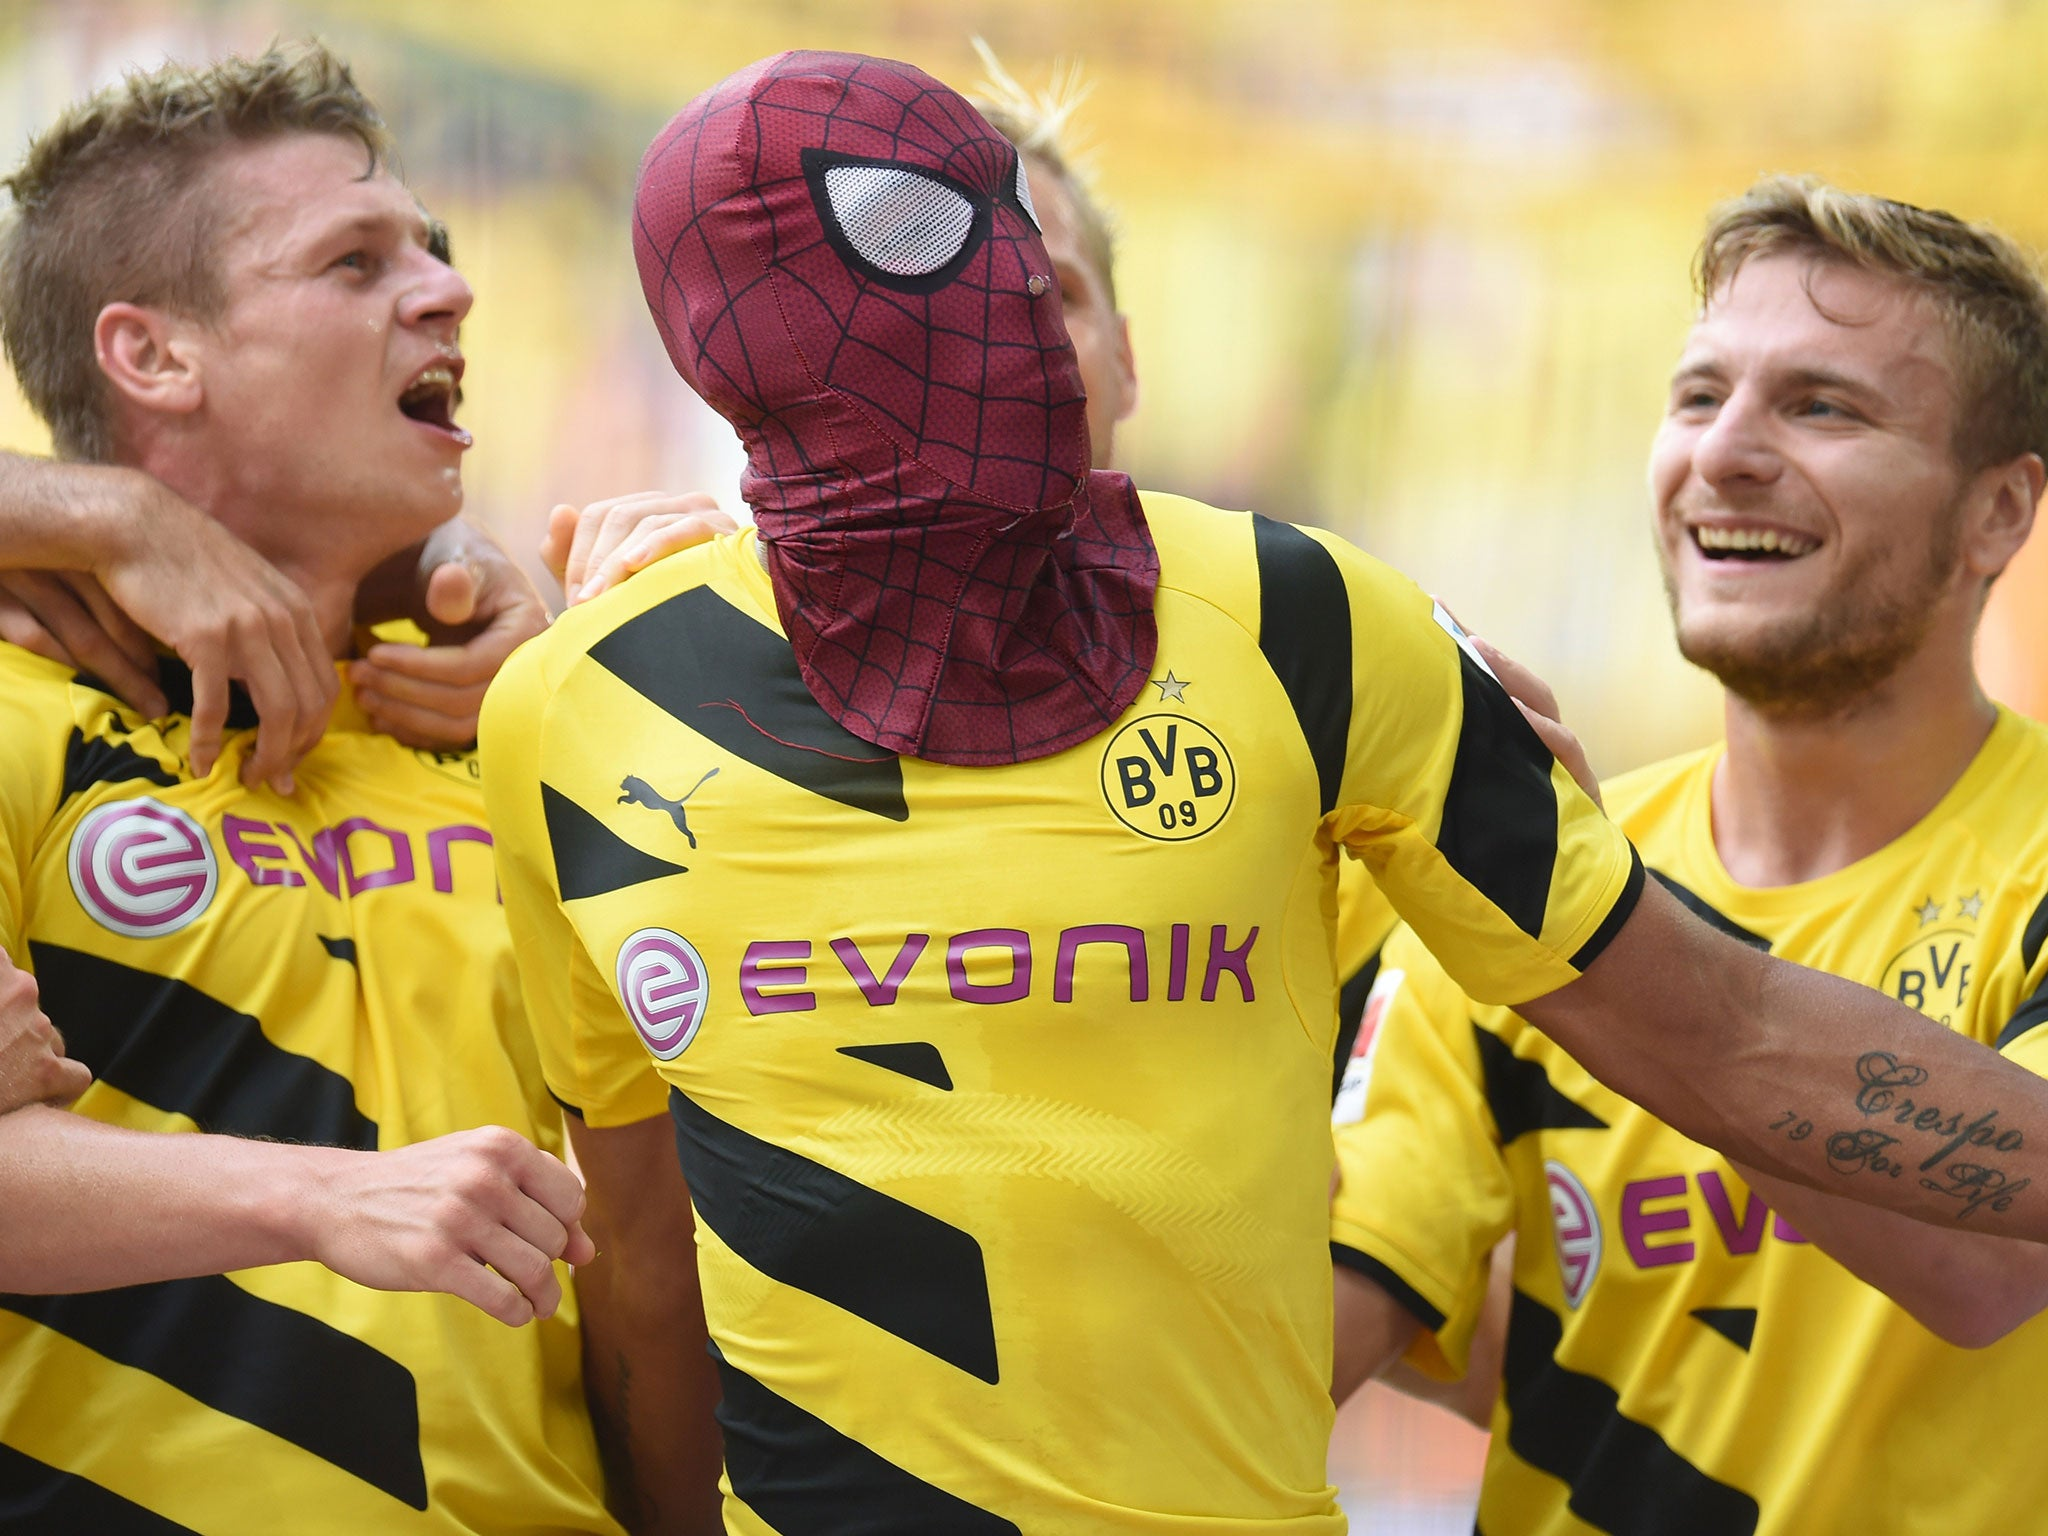 Pierre-Emerick Aubameyang as Spiderman: The best, most ... Pierre Emerick Aubameyang Spiderman